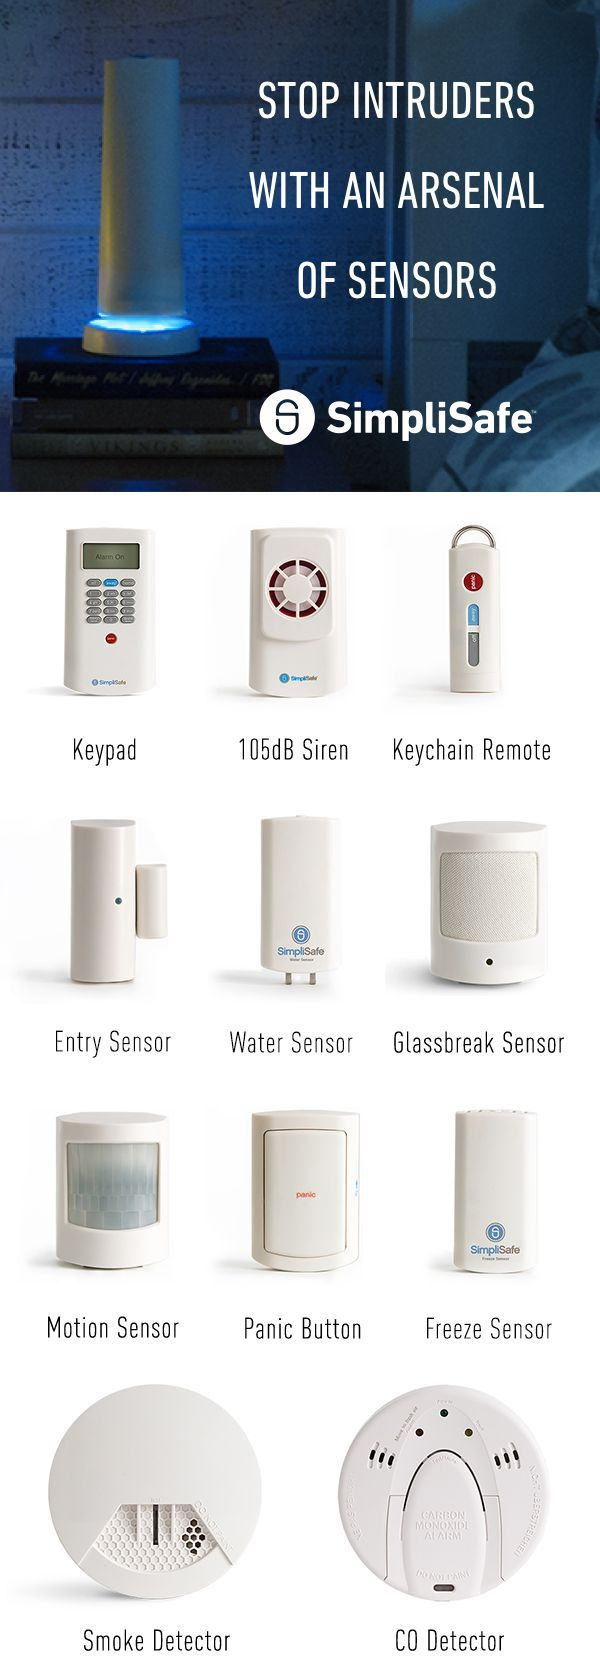 small resolution of when you choose simplisafe you get a custom home security system shipped straight to your door within 30 minutes it s set up and your whole apartment is